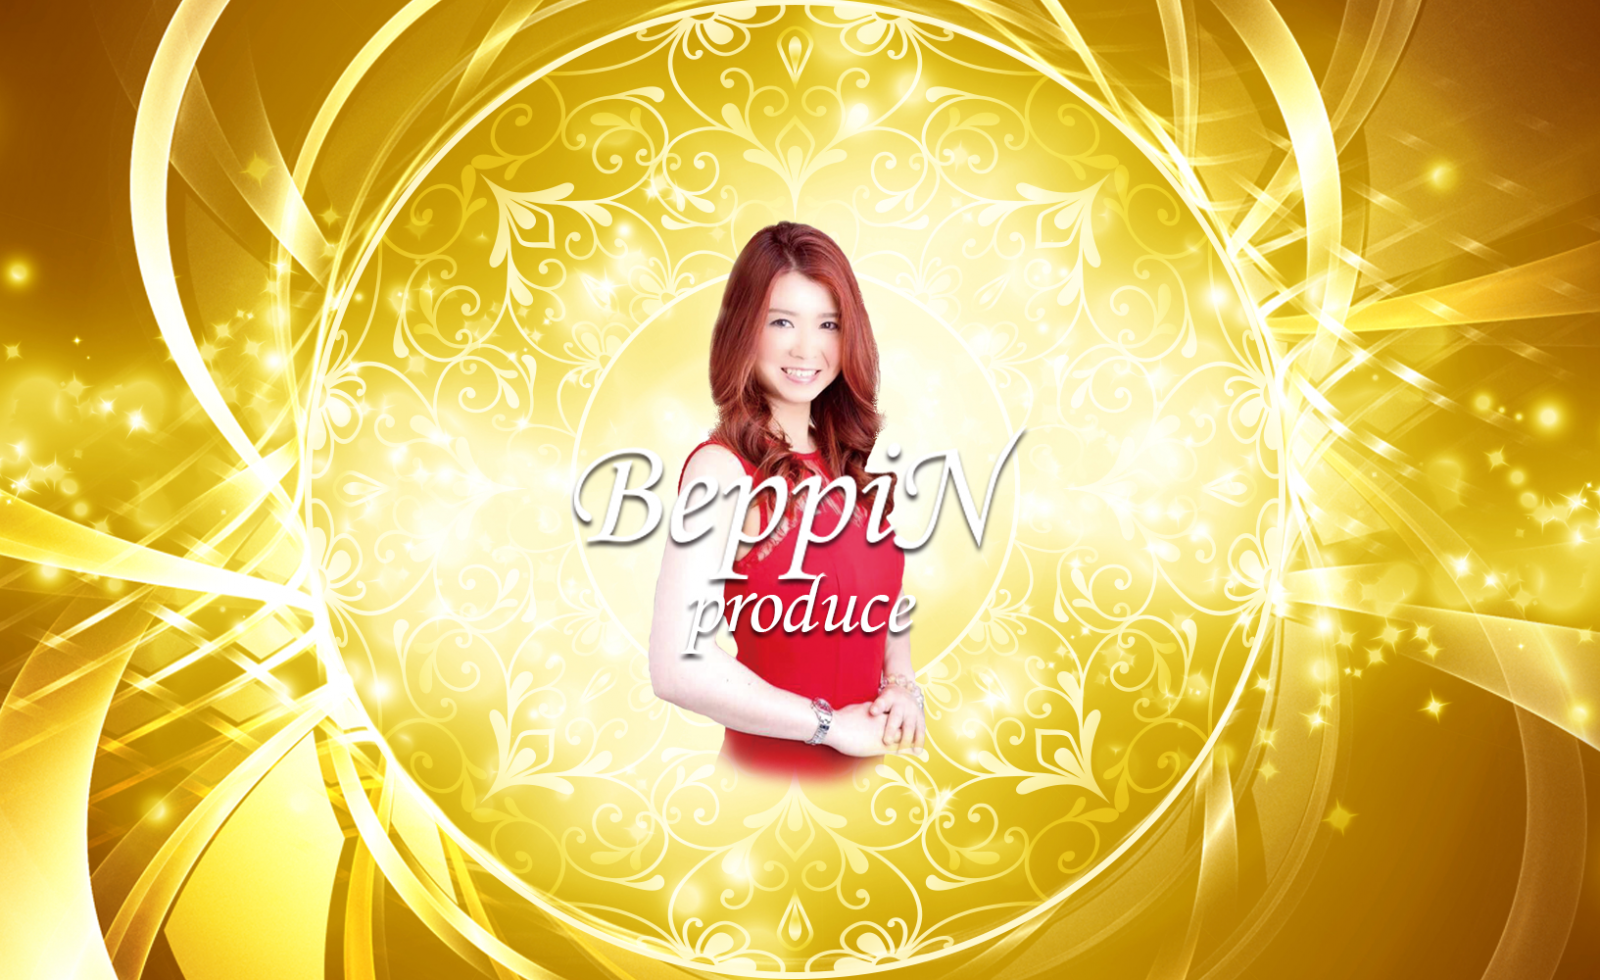 BeppiNproducetop19201200-4